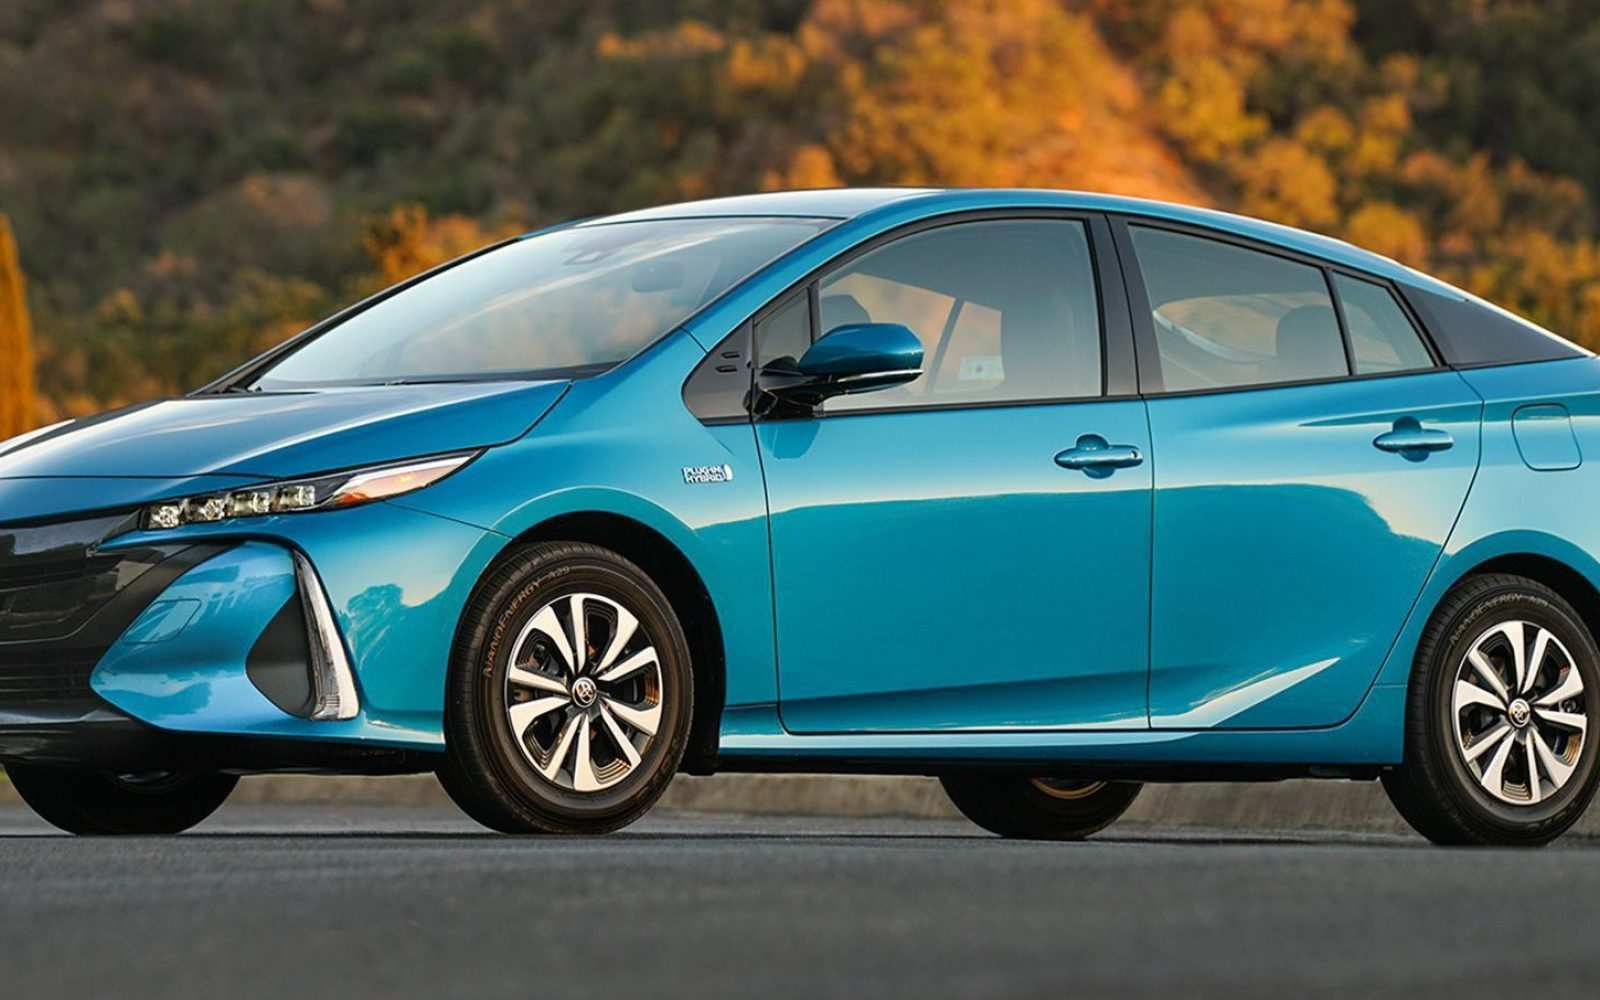 61 All New Toyota Electric Car 2020 Release Date And Concept